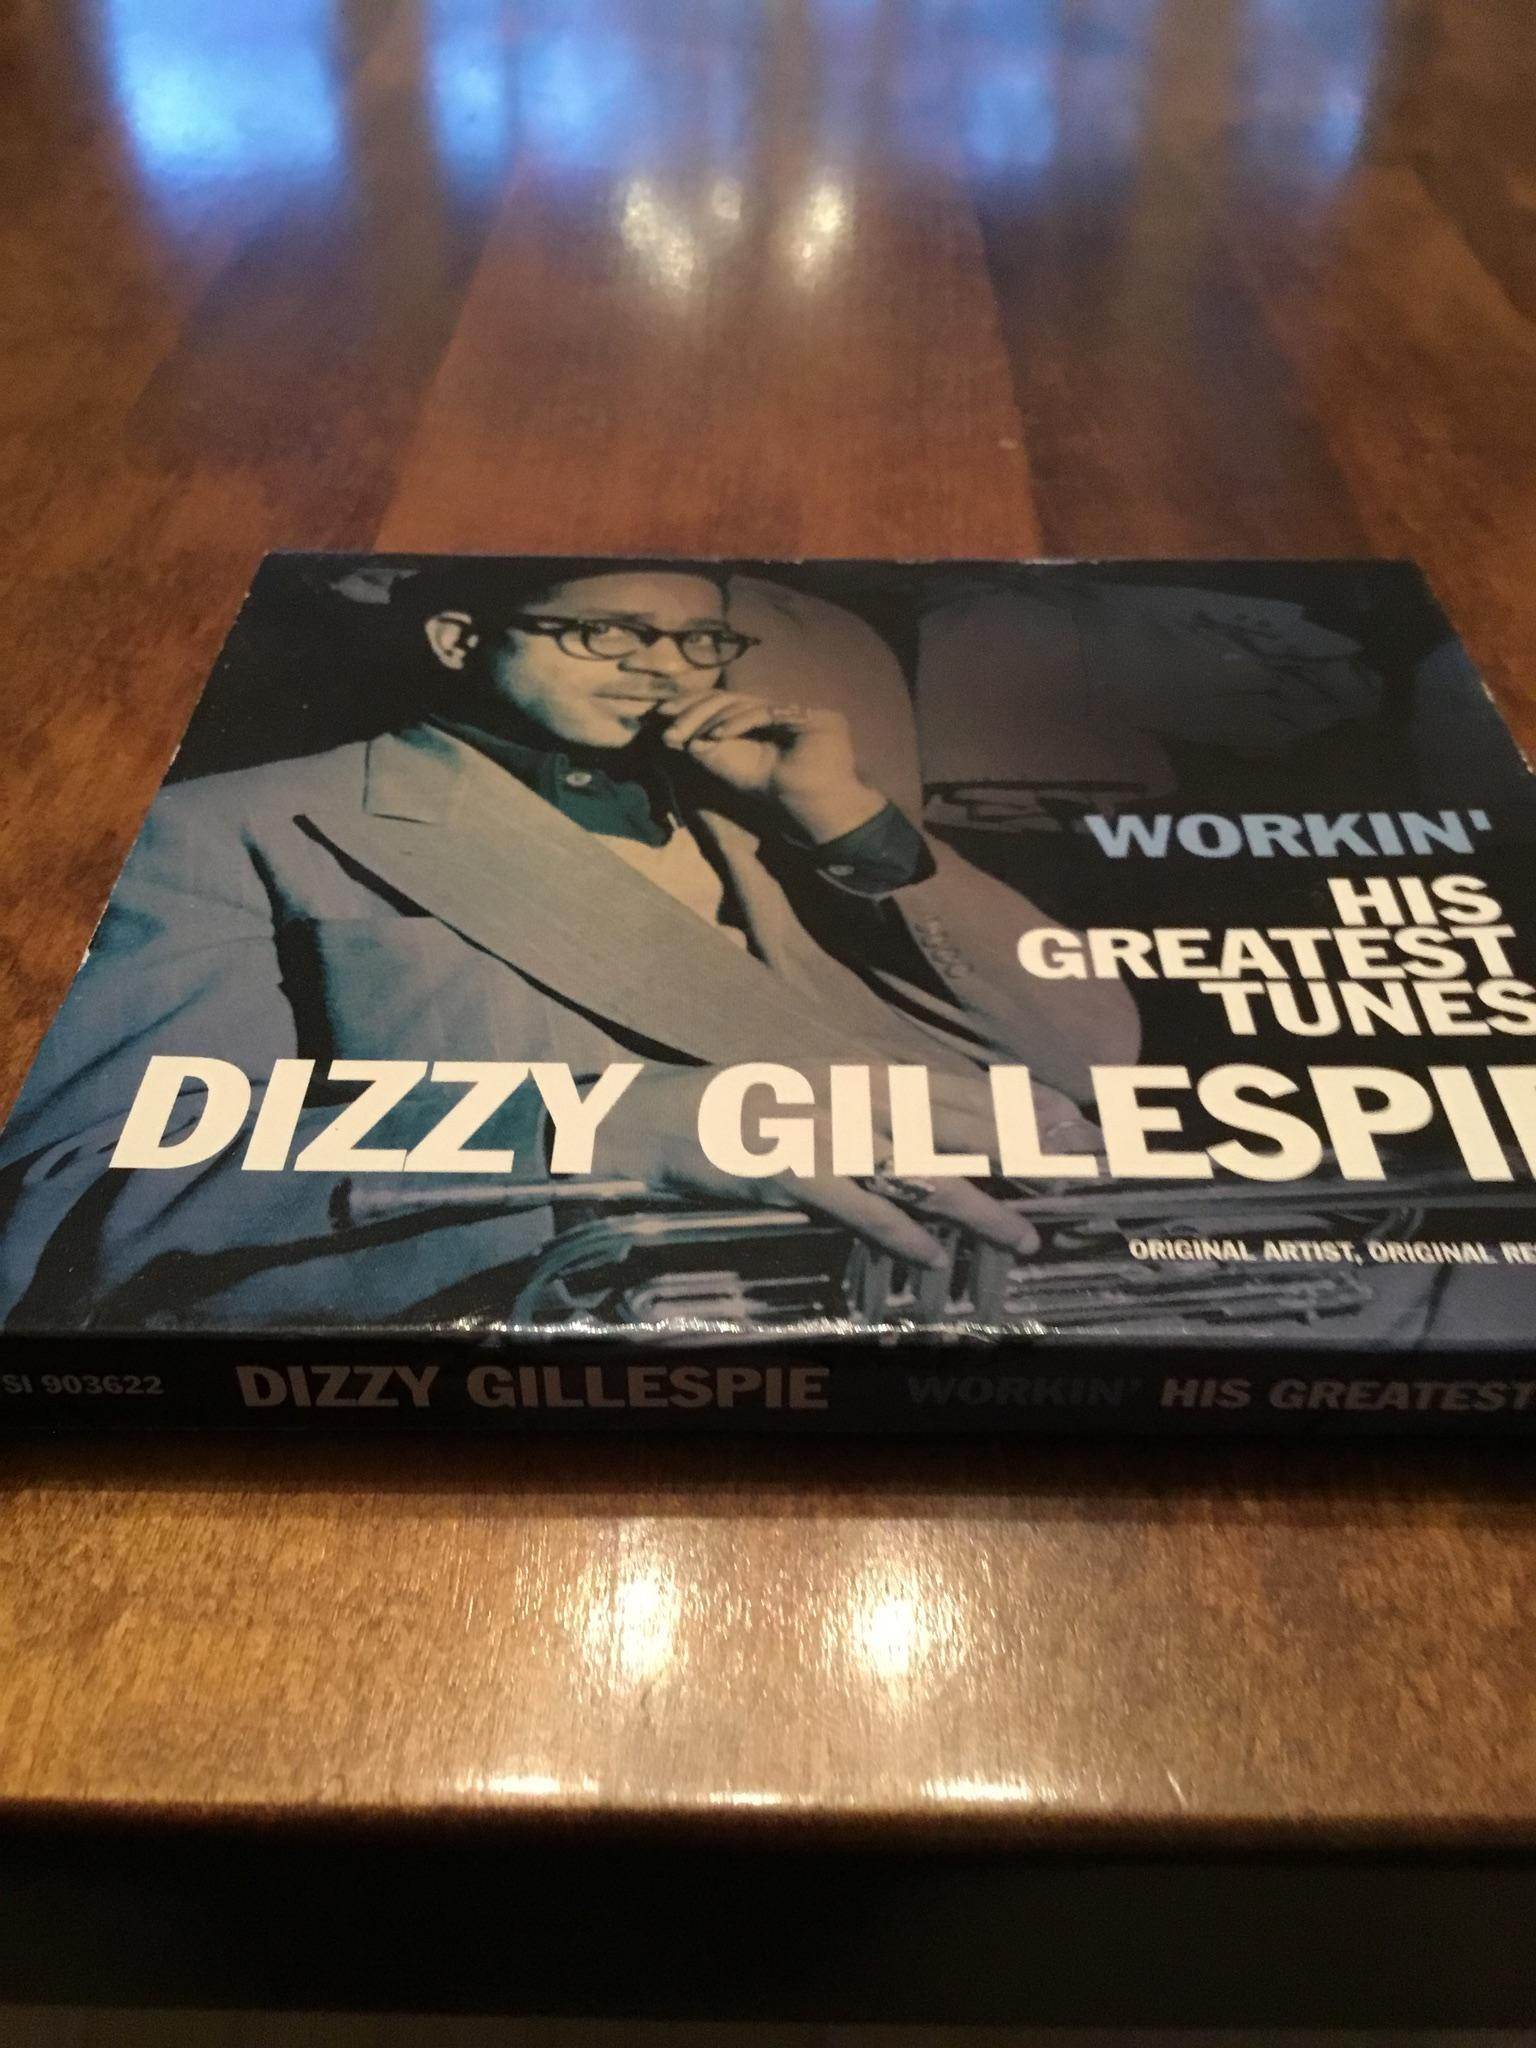 Four CDs. Dizzy Gillespie, his greatest hits; Jazzis; the